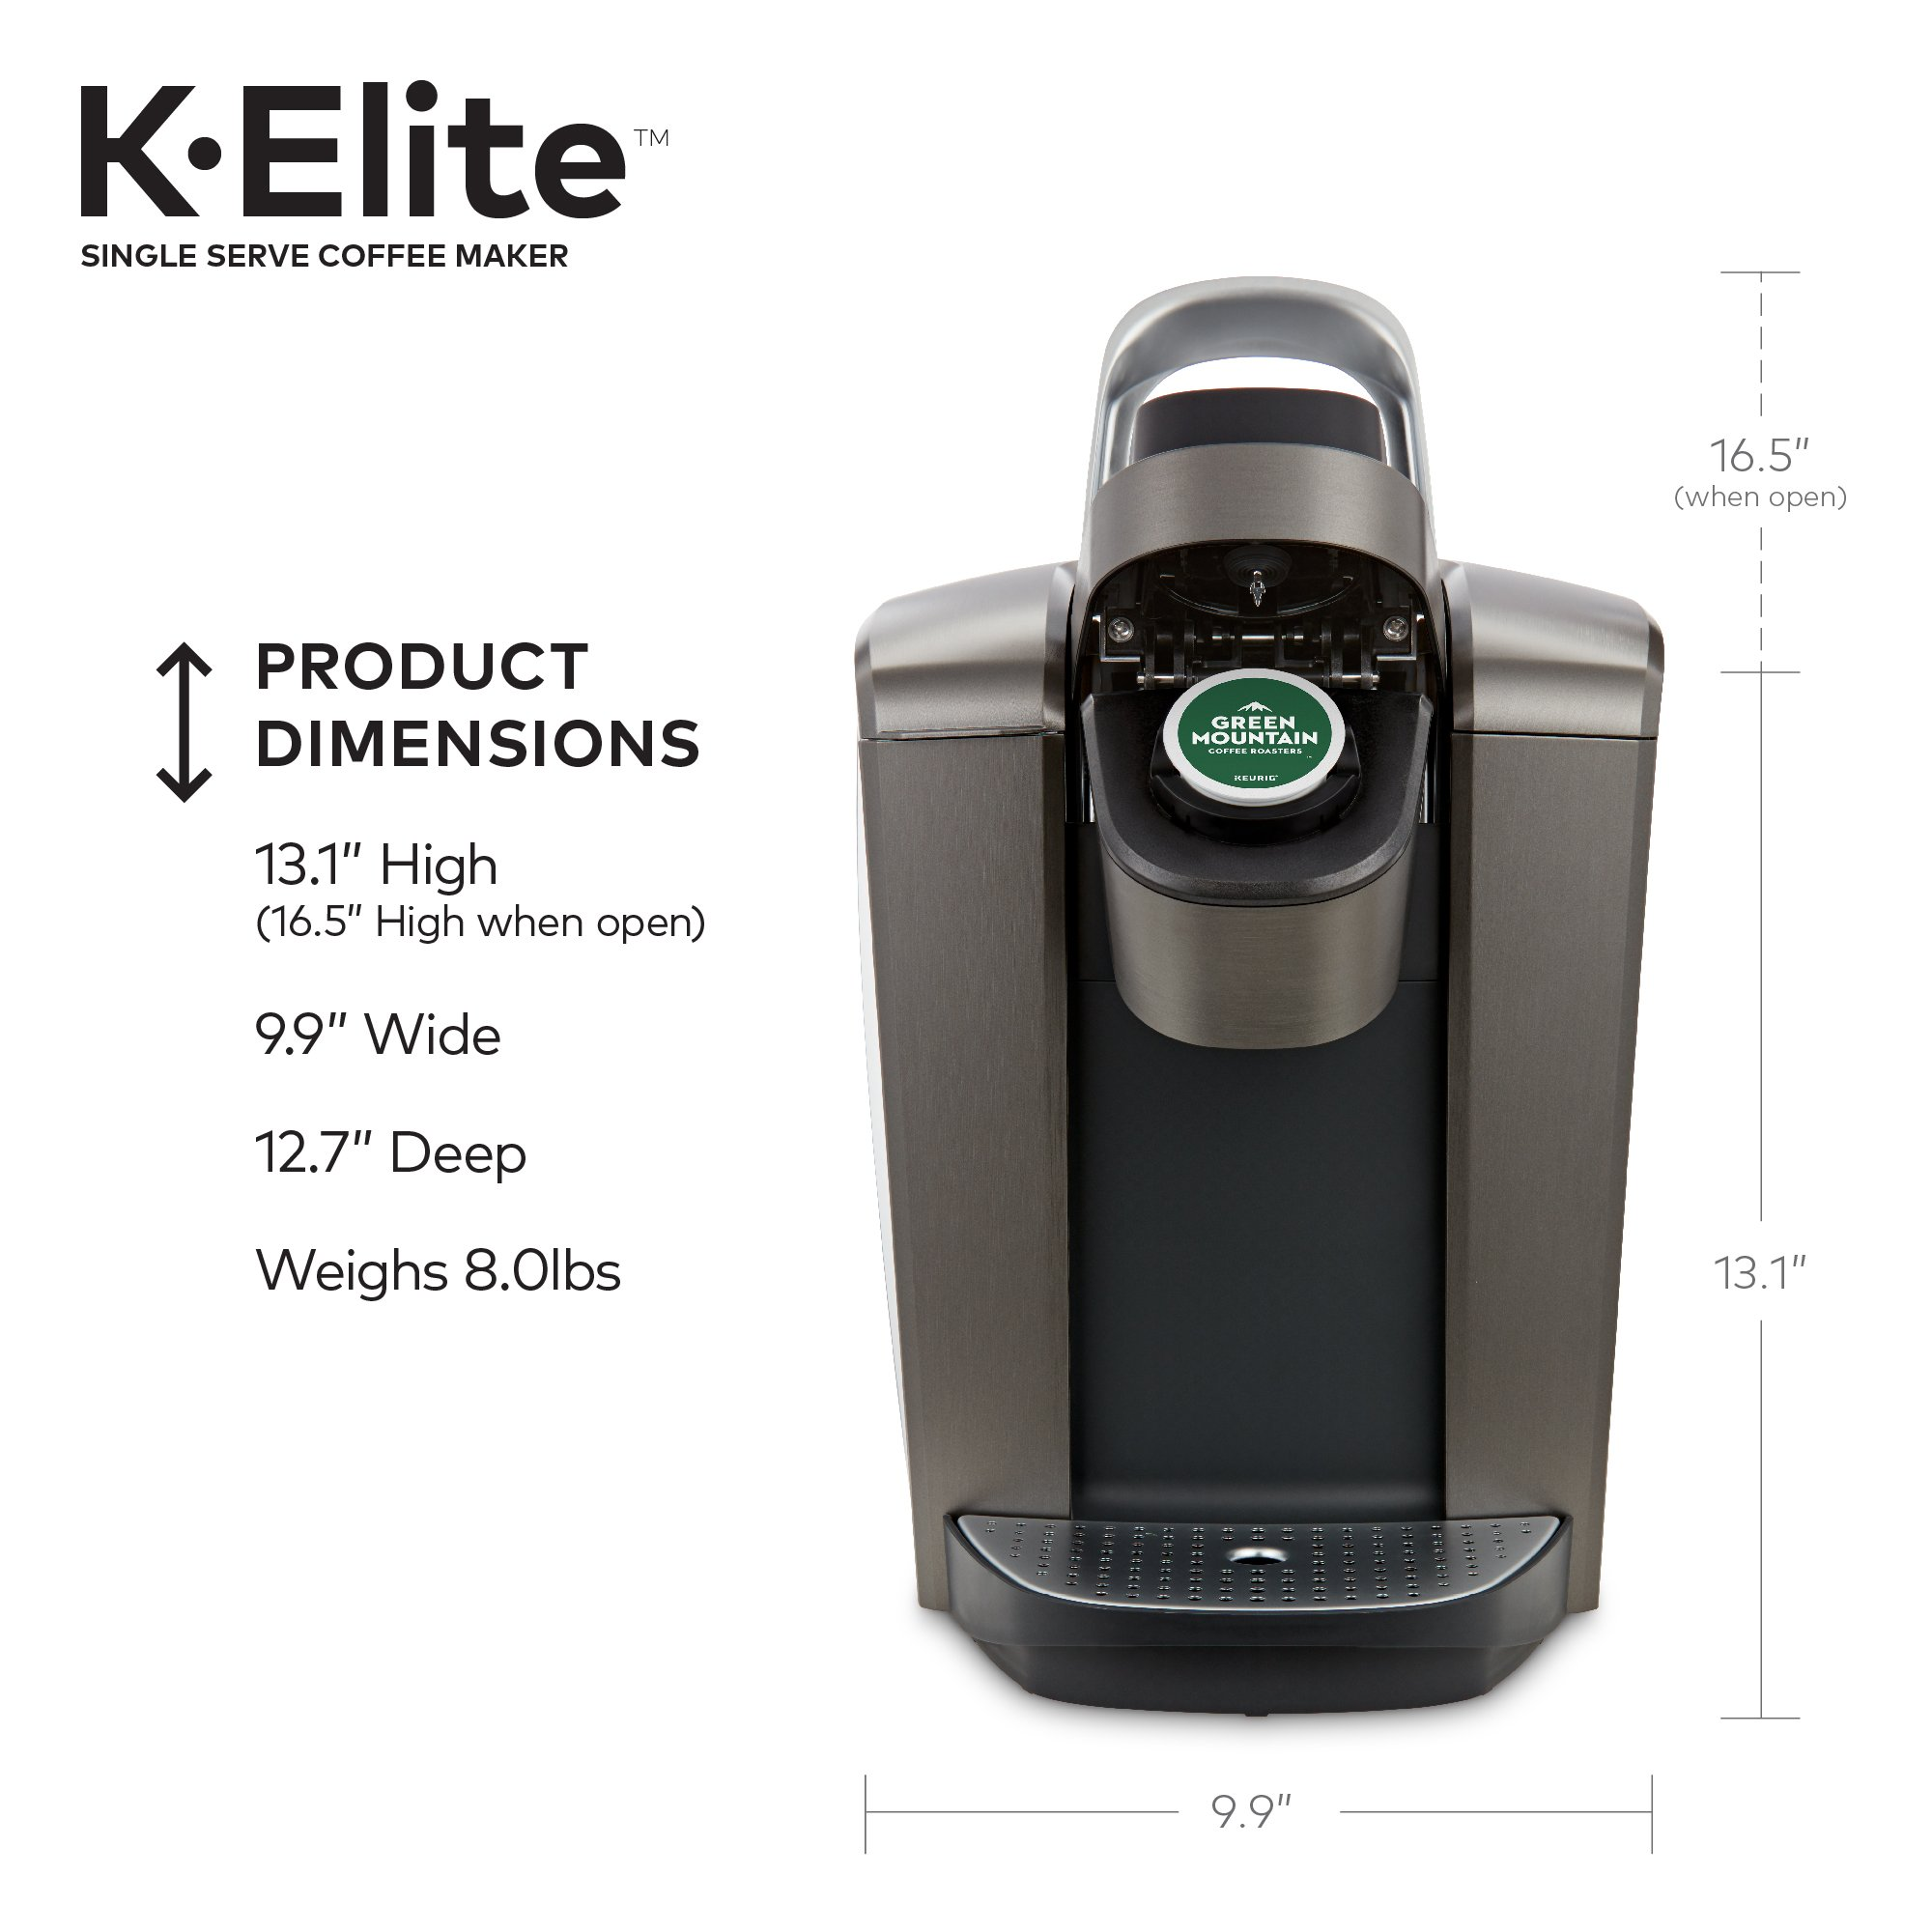 Keurig K-Elite K Single Serve K-Cup Pod Maker, with Strong Temperature Control, Iced Coffee Capability, 12oz Brew Size, Brushed Slate by Keurig (Image #8)